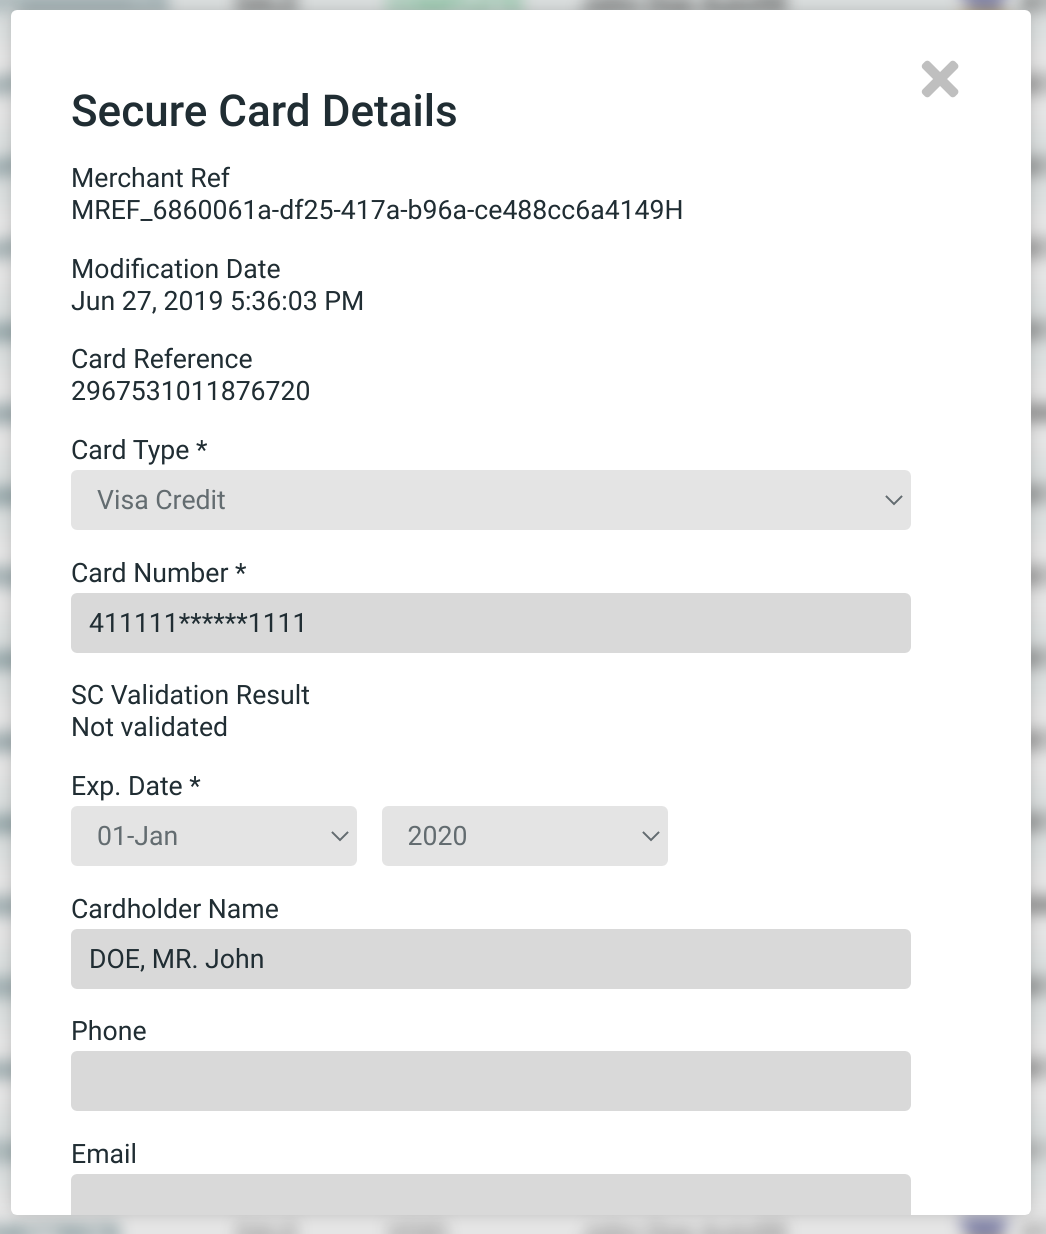 merchant:existing_merchant:selfcare_system:reporting:create_secure_card.png